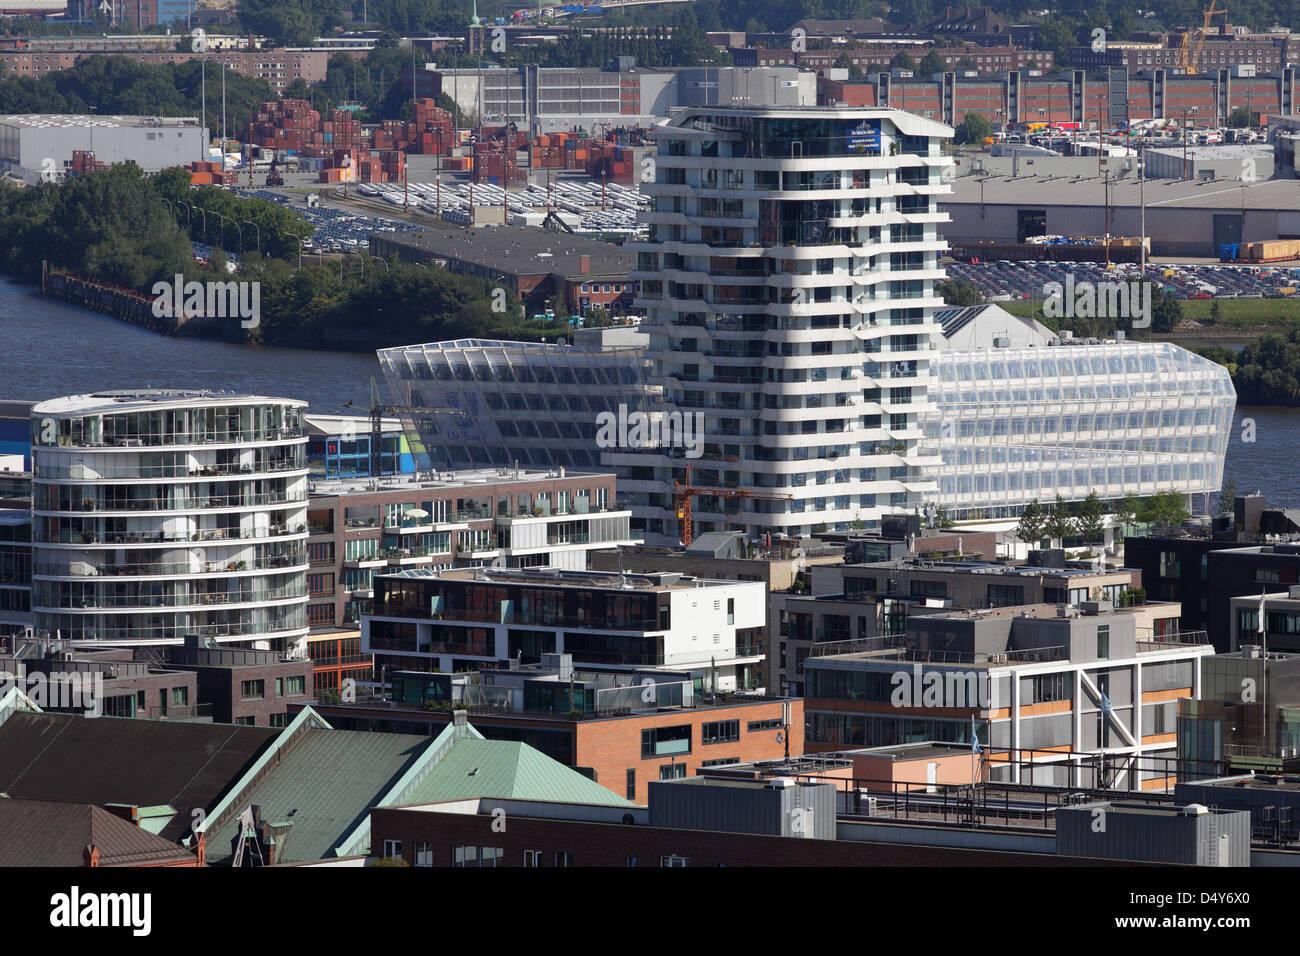 Hamburg, Germany, overlooking the Marco Polo Tower and the Unilever - Stock Image